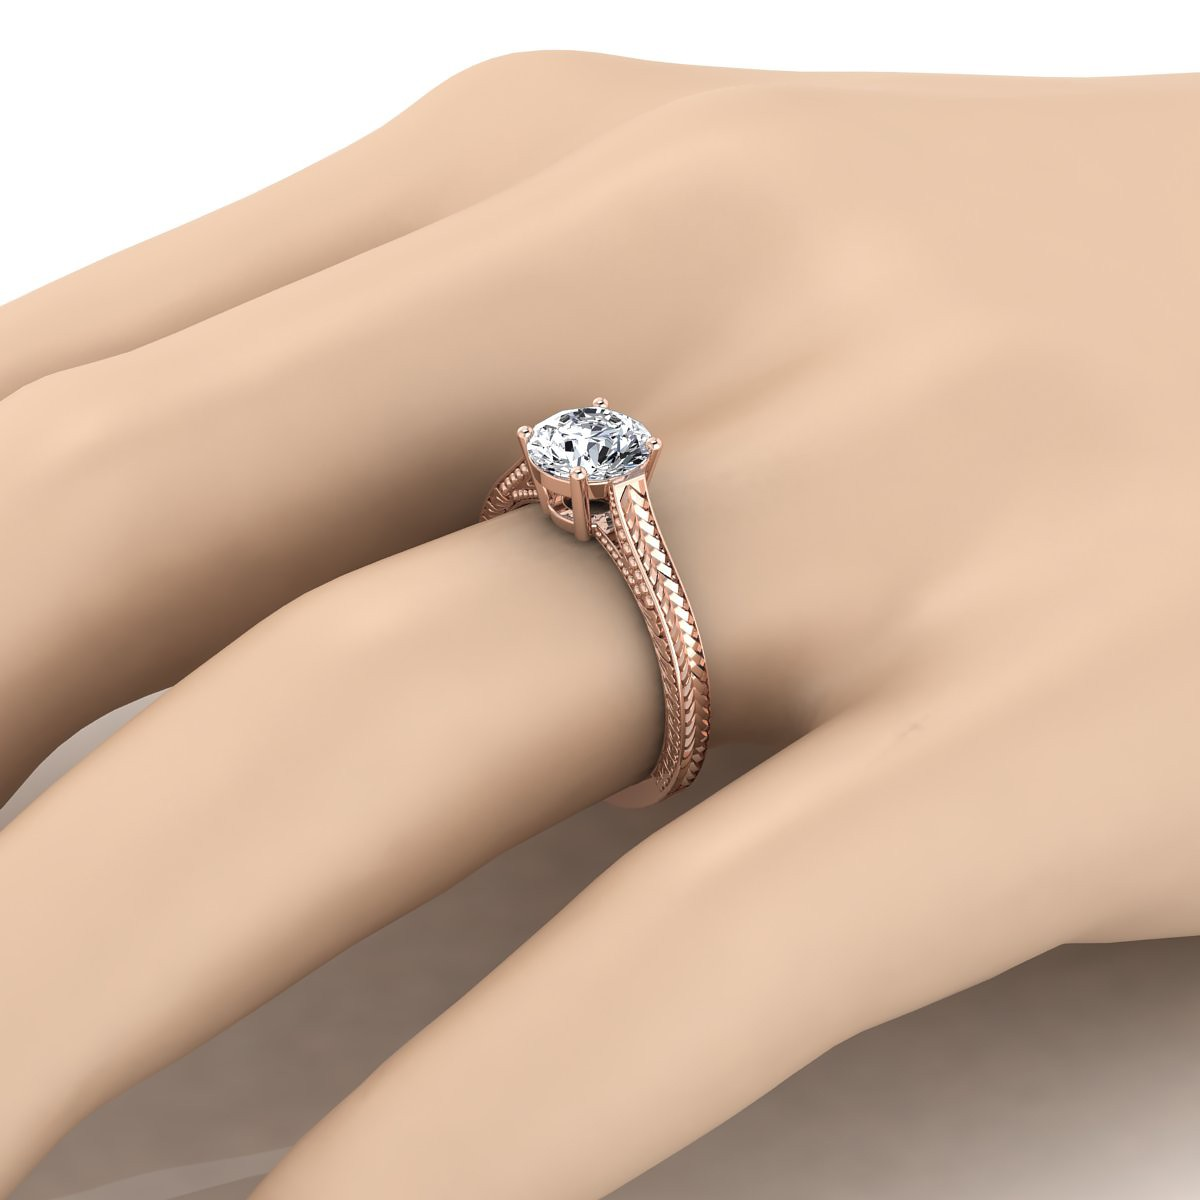 Antique Inspired Engraved Diamond Engagement Ring With Millgrain Finish In 14k Rose Gold